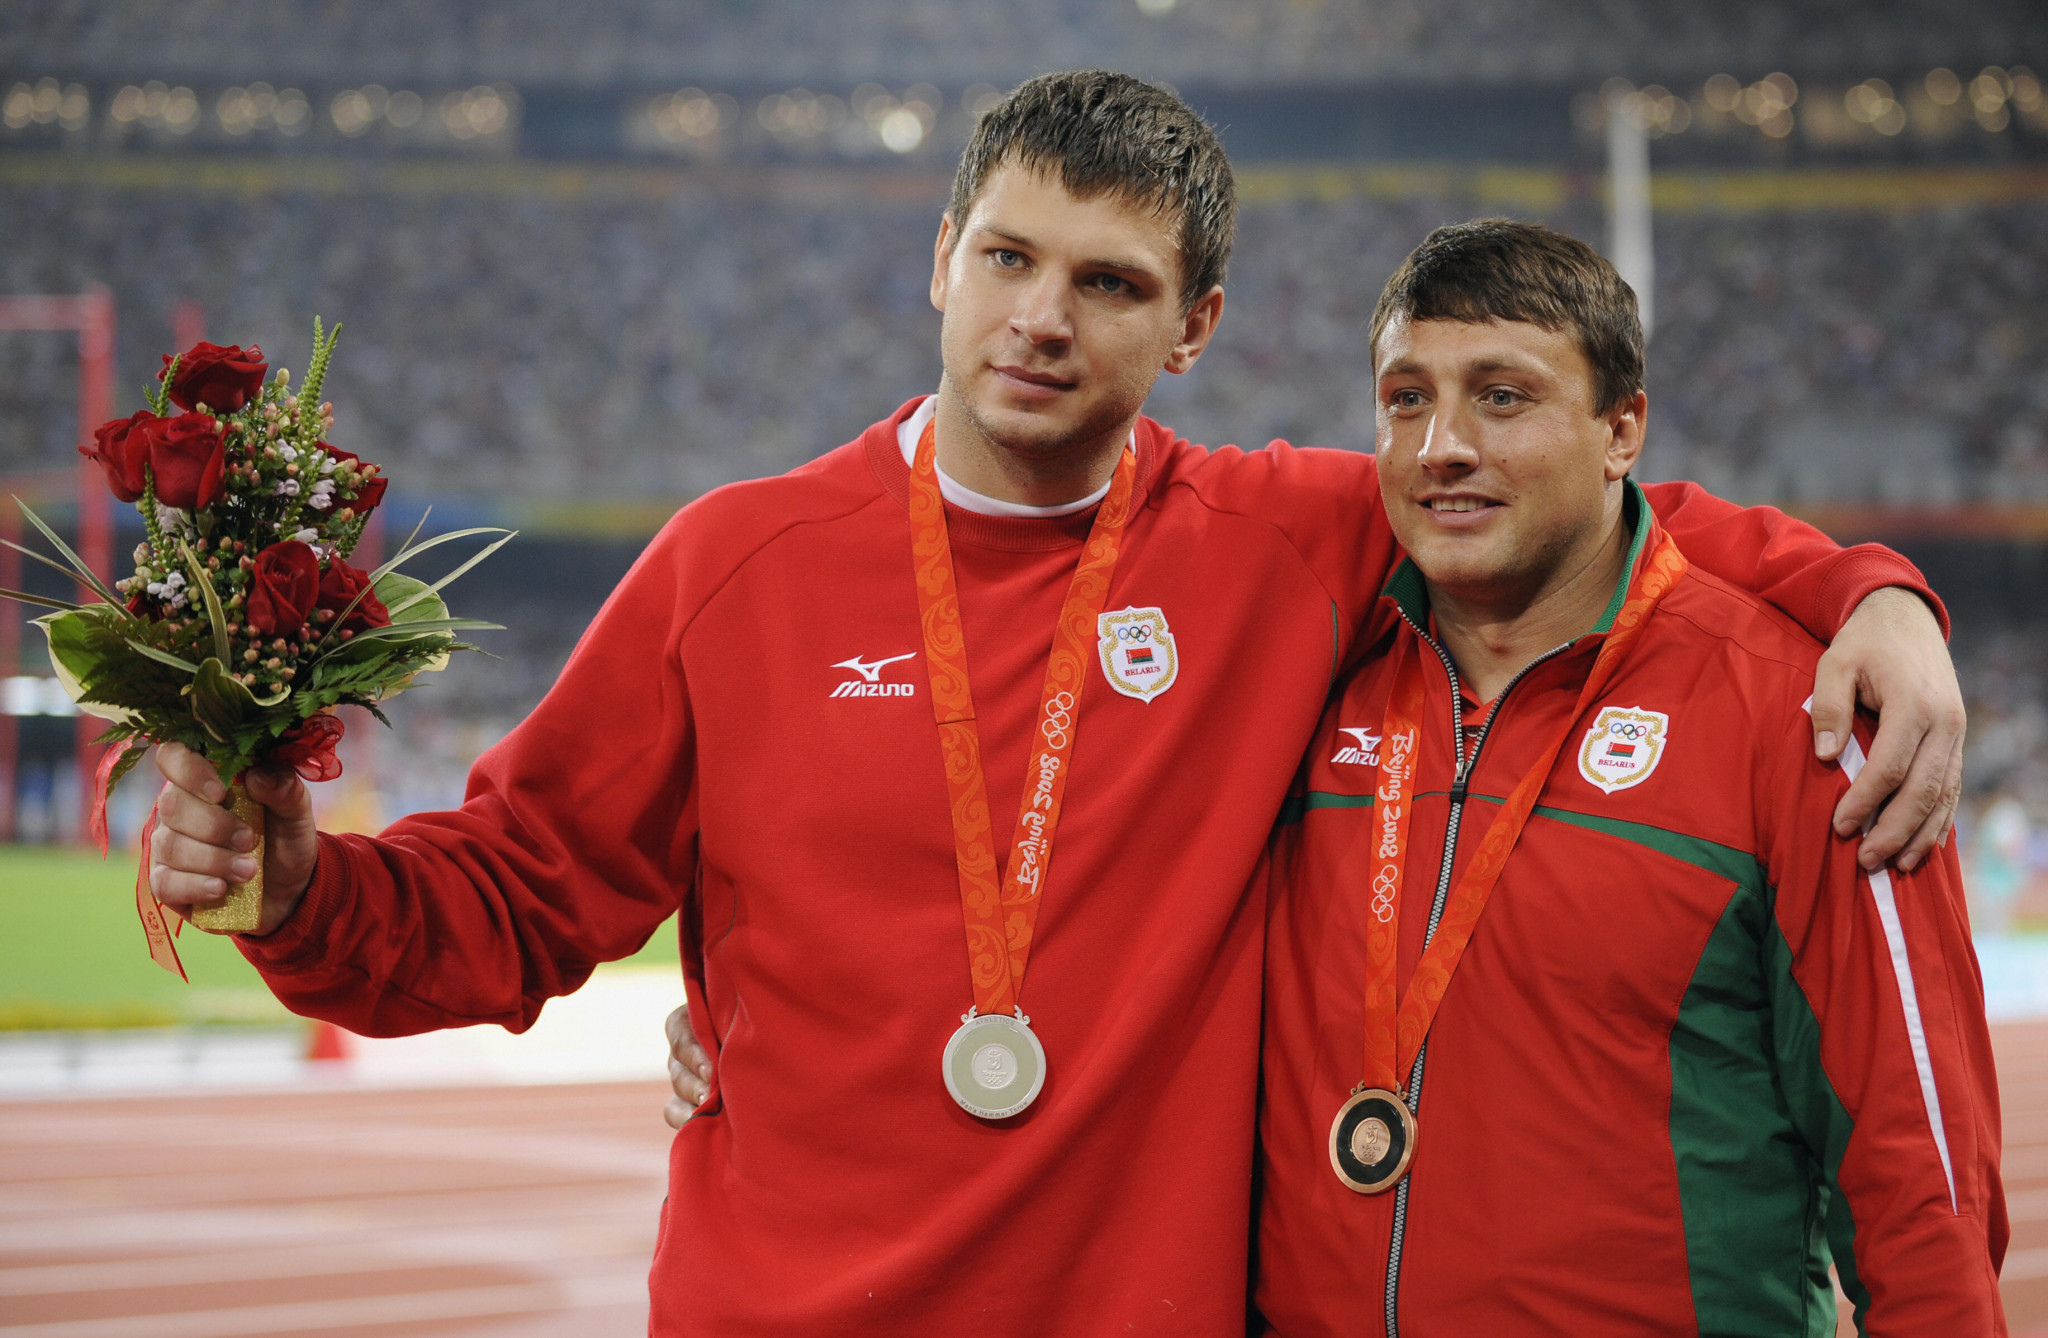 Ivan Tsikhan, right, has replaced Vadim Devyatovskiy, left, as President of the Belarus Athletic Federation - both were stripped of the medals they won at Beijing 2008 after failing drugs tests but successfully appealed to have them returned ©Getty Images